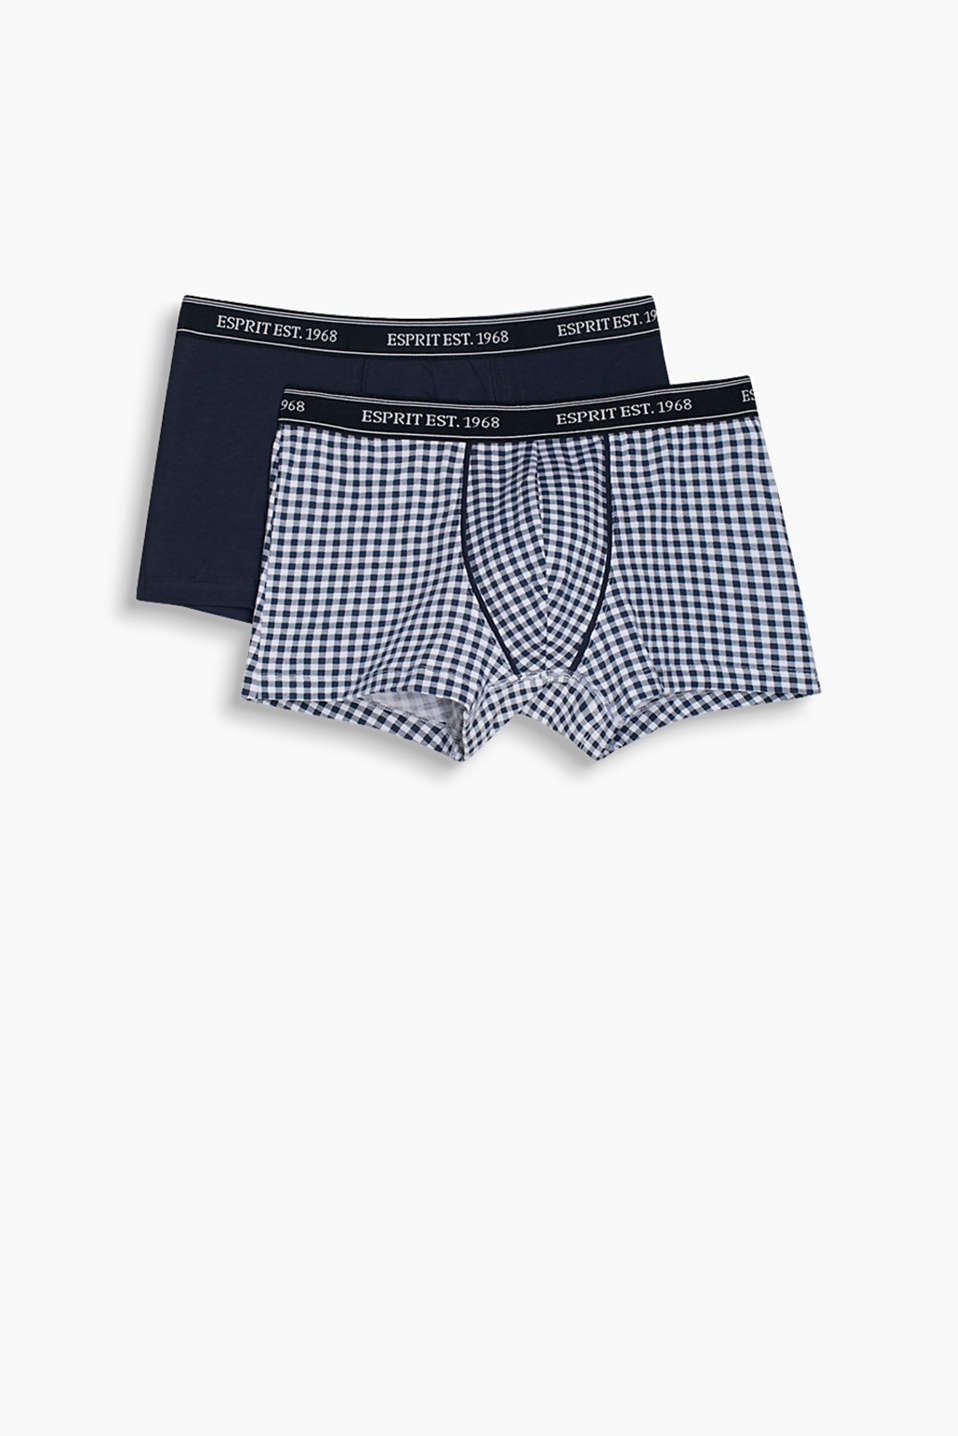 Two pairs of hipster shorts, cotton/stretch